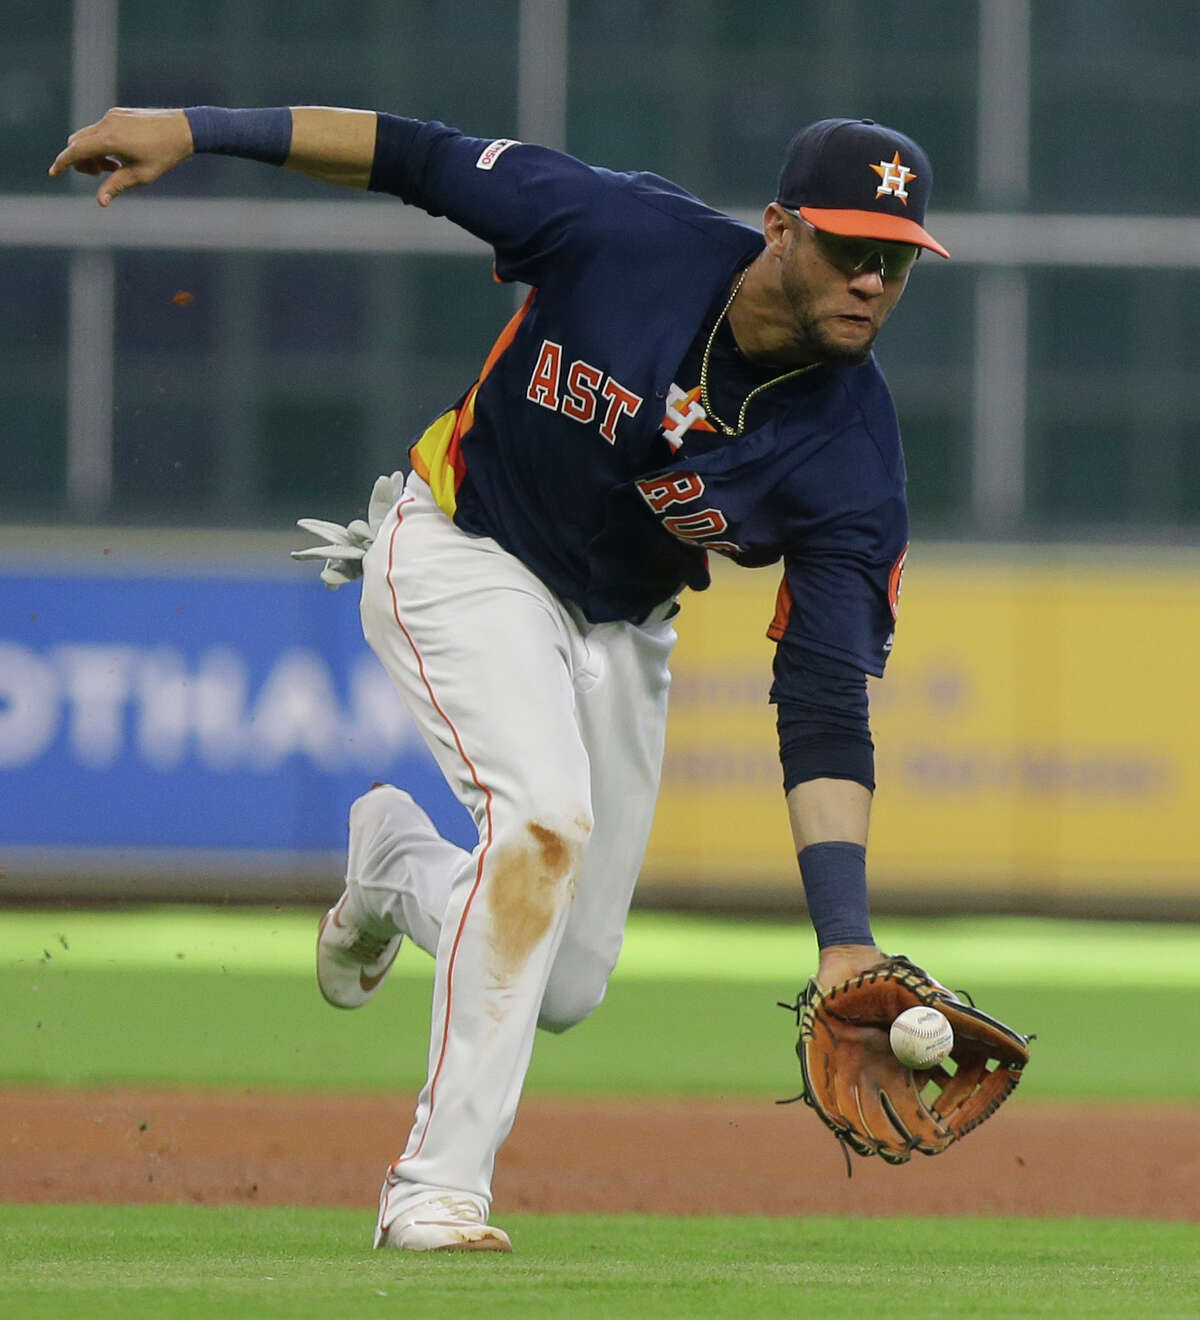 Houston Astros Yuli Gurriel scoops up a ground out hit by Toronto Blue Jays Lourdes Gurriel Jr. during the third inning at Minute Maid Park Saturday, June 15, 2019, in Houston.